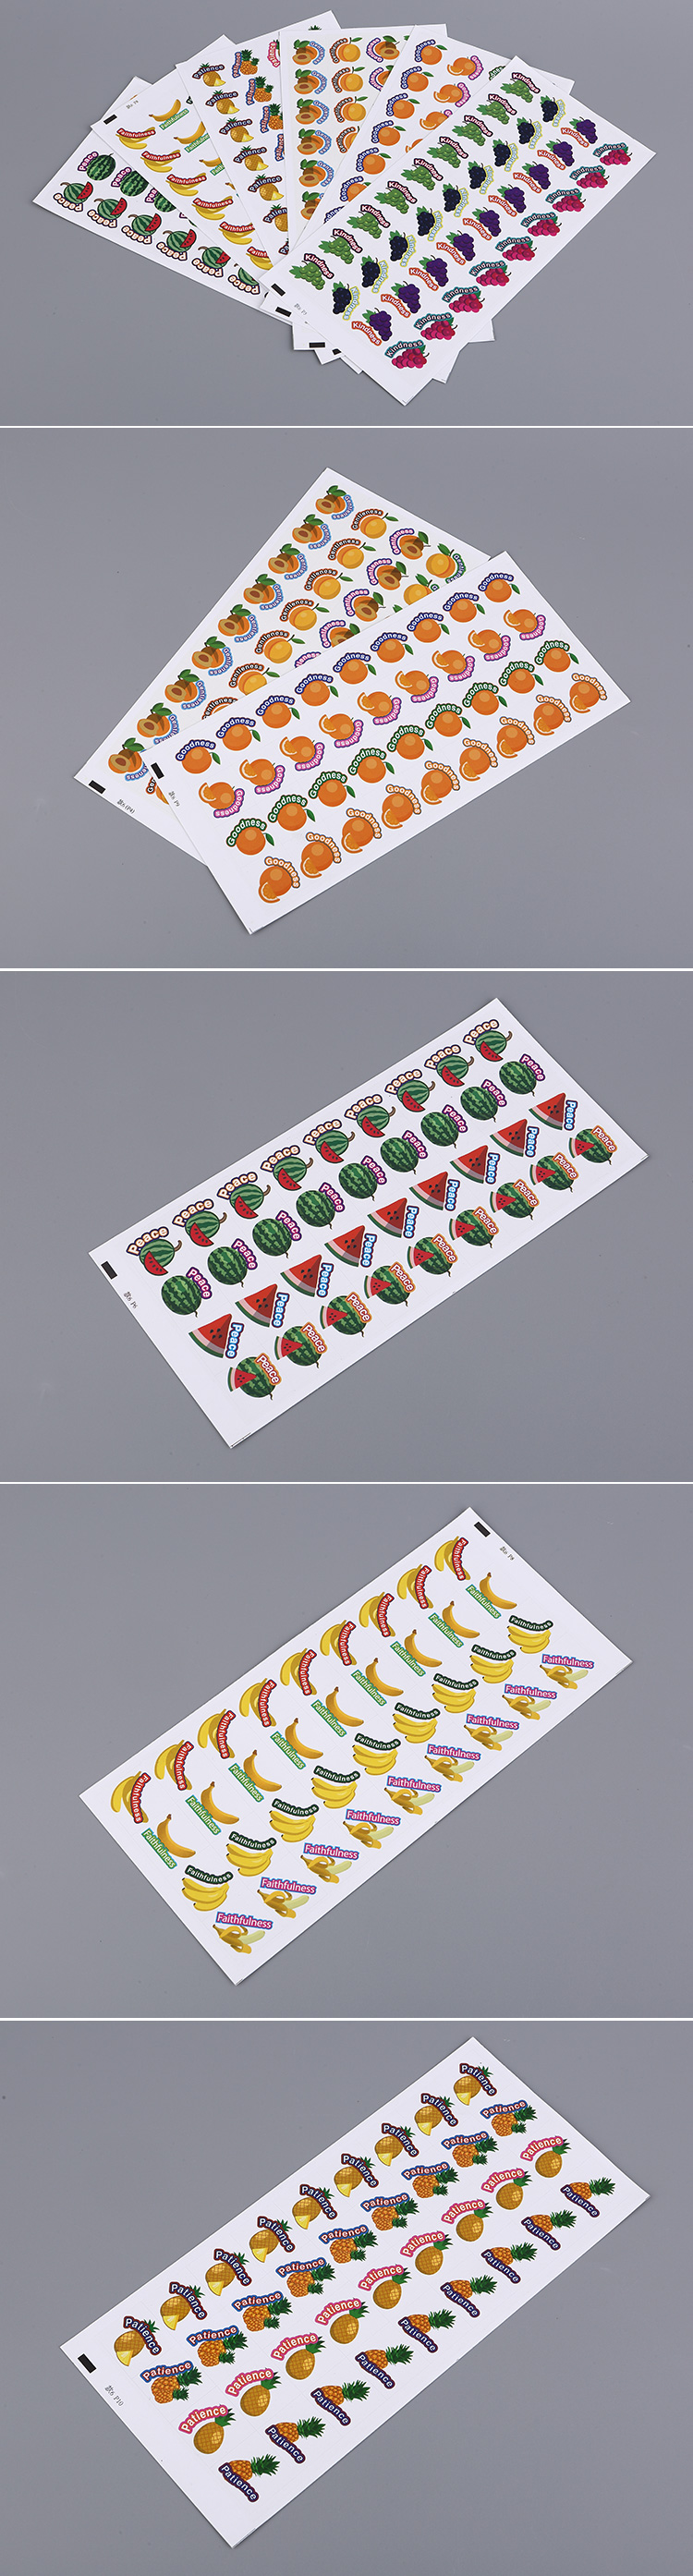 Custom Fragrant Adhesive Sticker Scratch and sniff Sticker with Sweet Fruit Scent for Promotional Gift